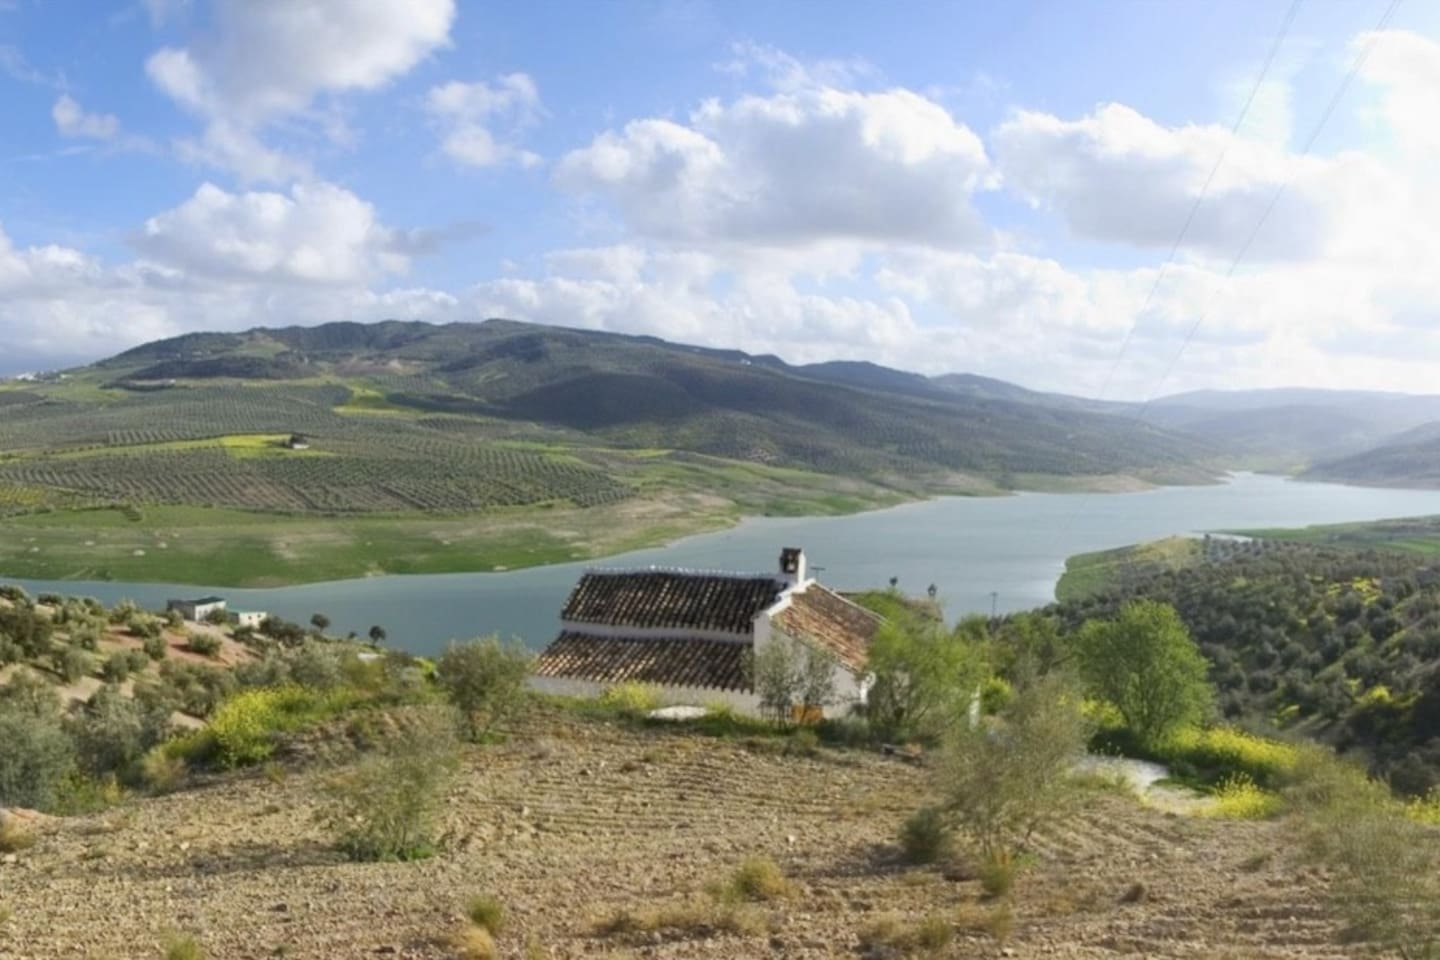 View from the rear of the cottage showing the stunning panoramic views over the lake, olive groves and mountains.